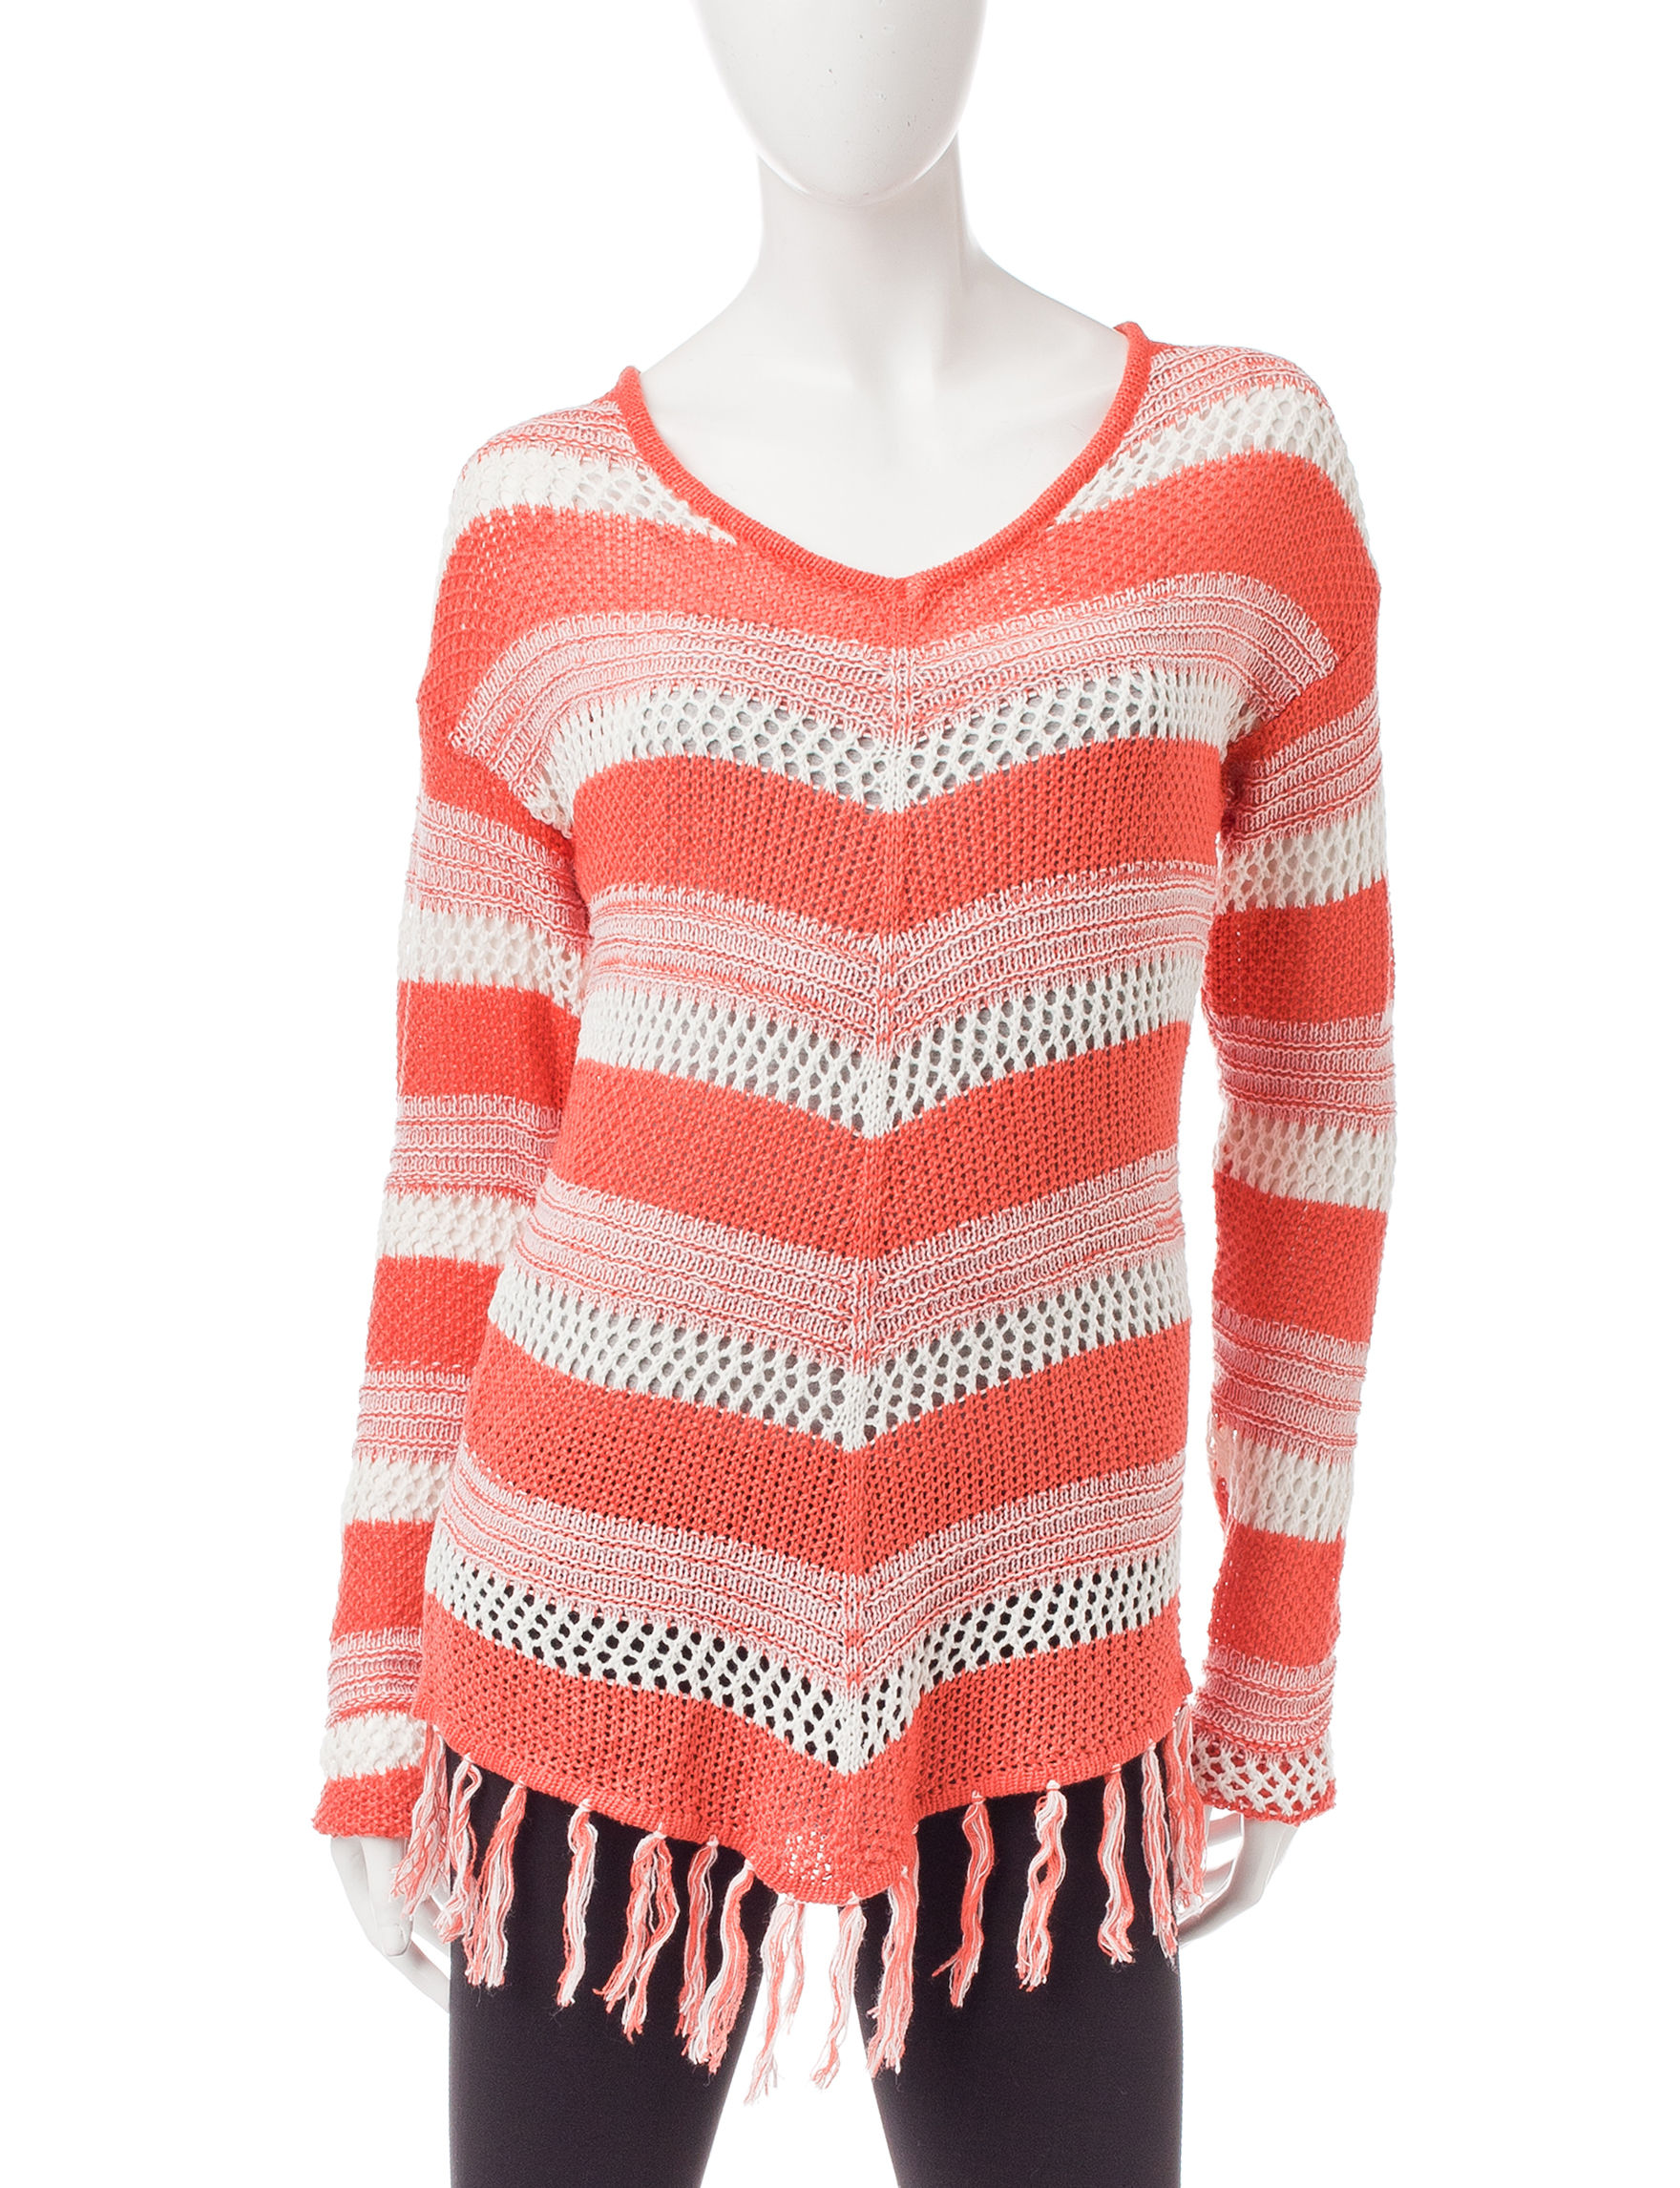 It's Our Time Bright Red Pull-overs Sweaters